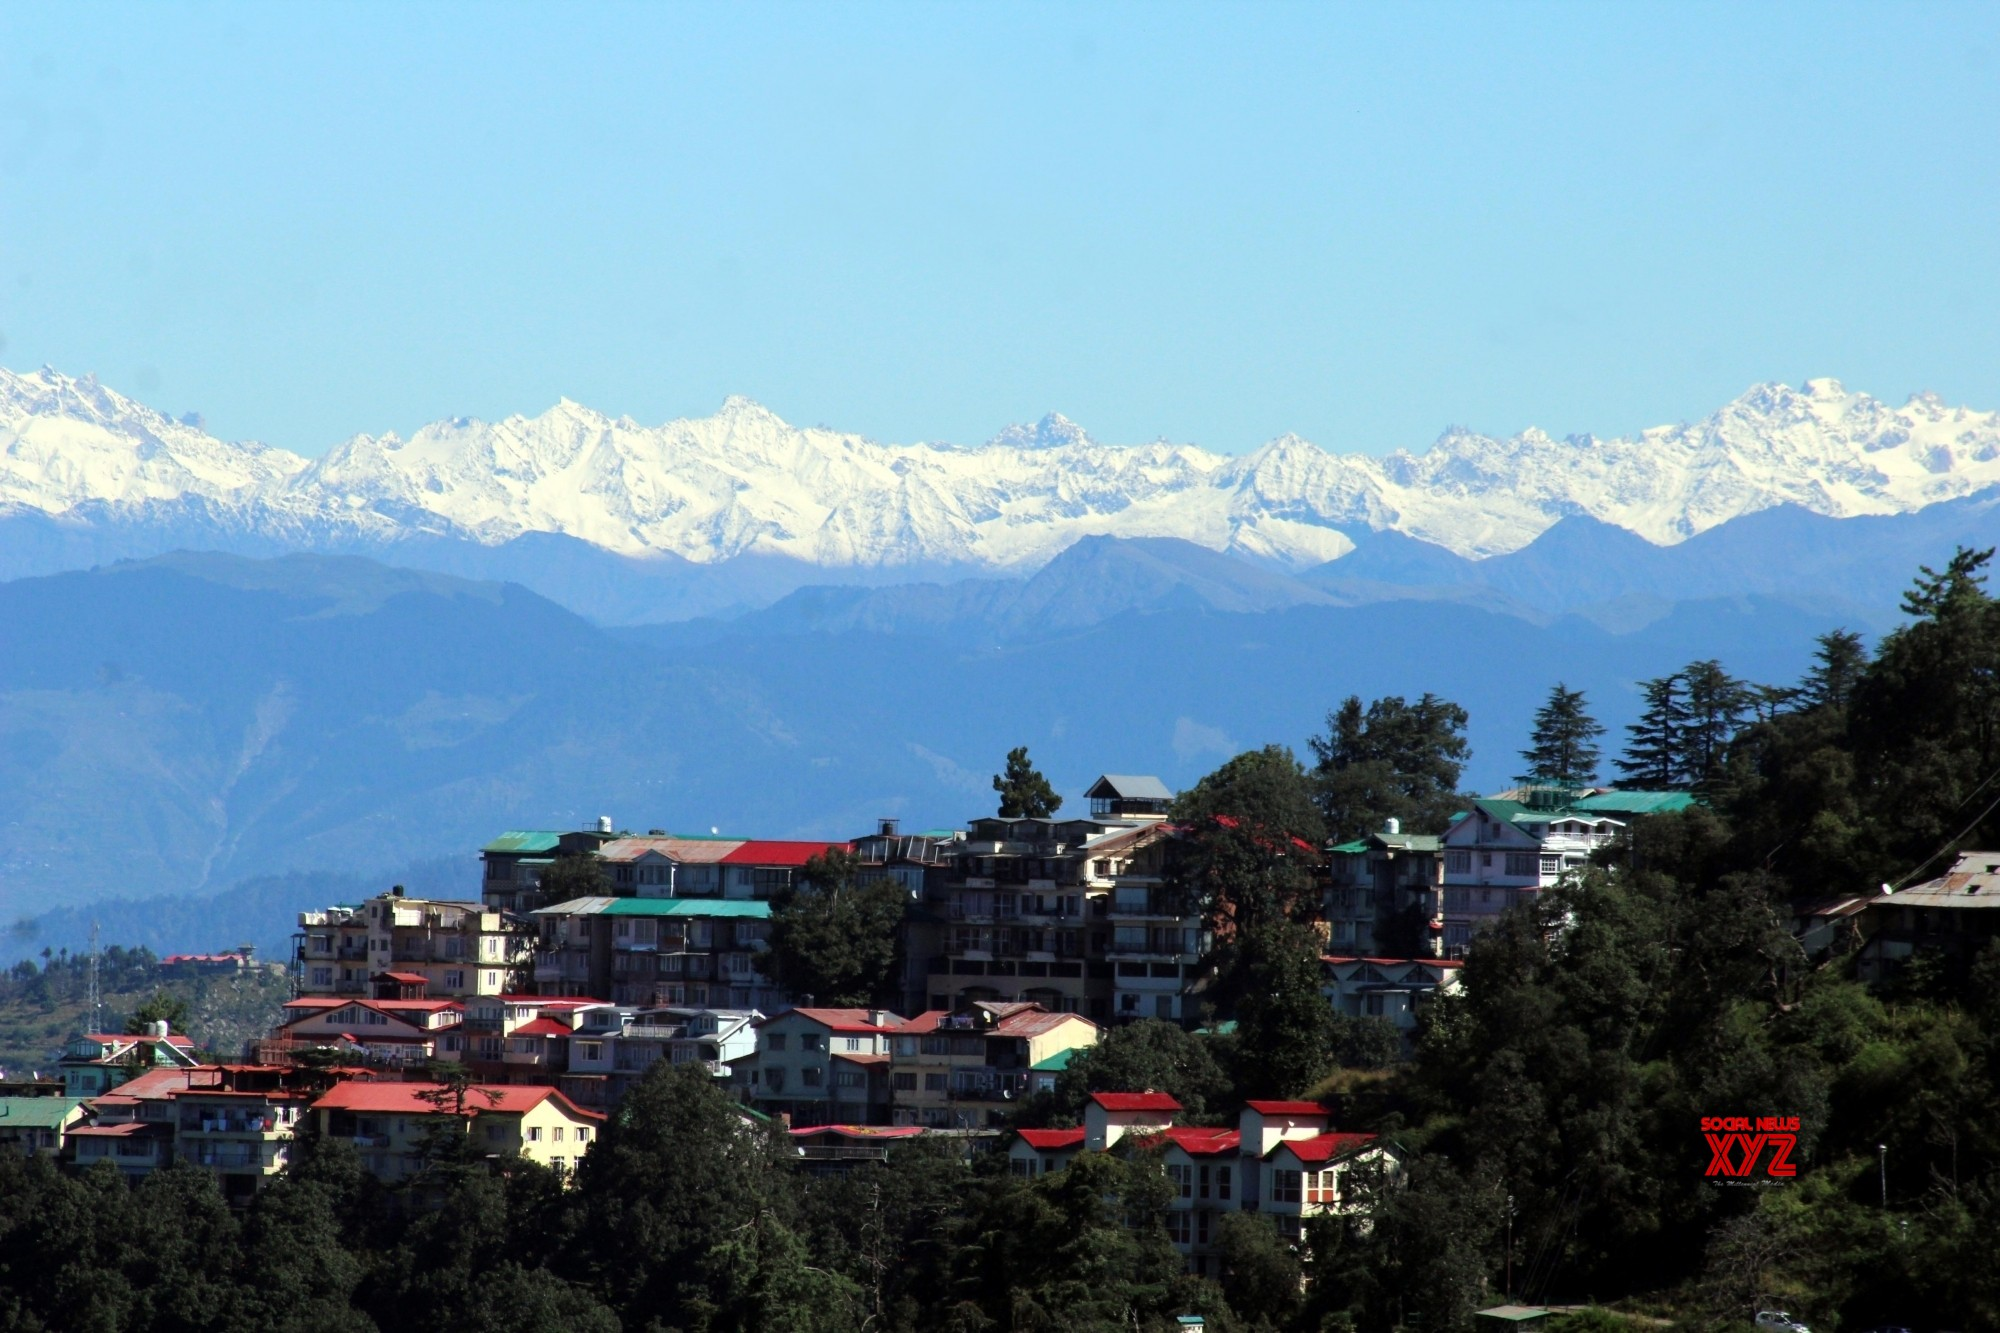 Sunny in Himachal despite freezing weather